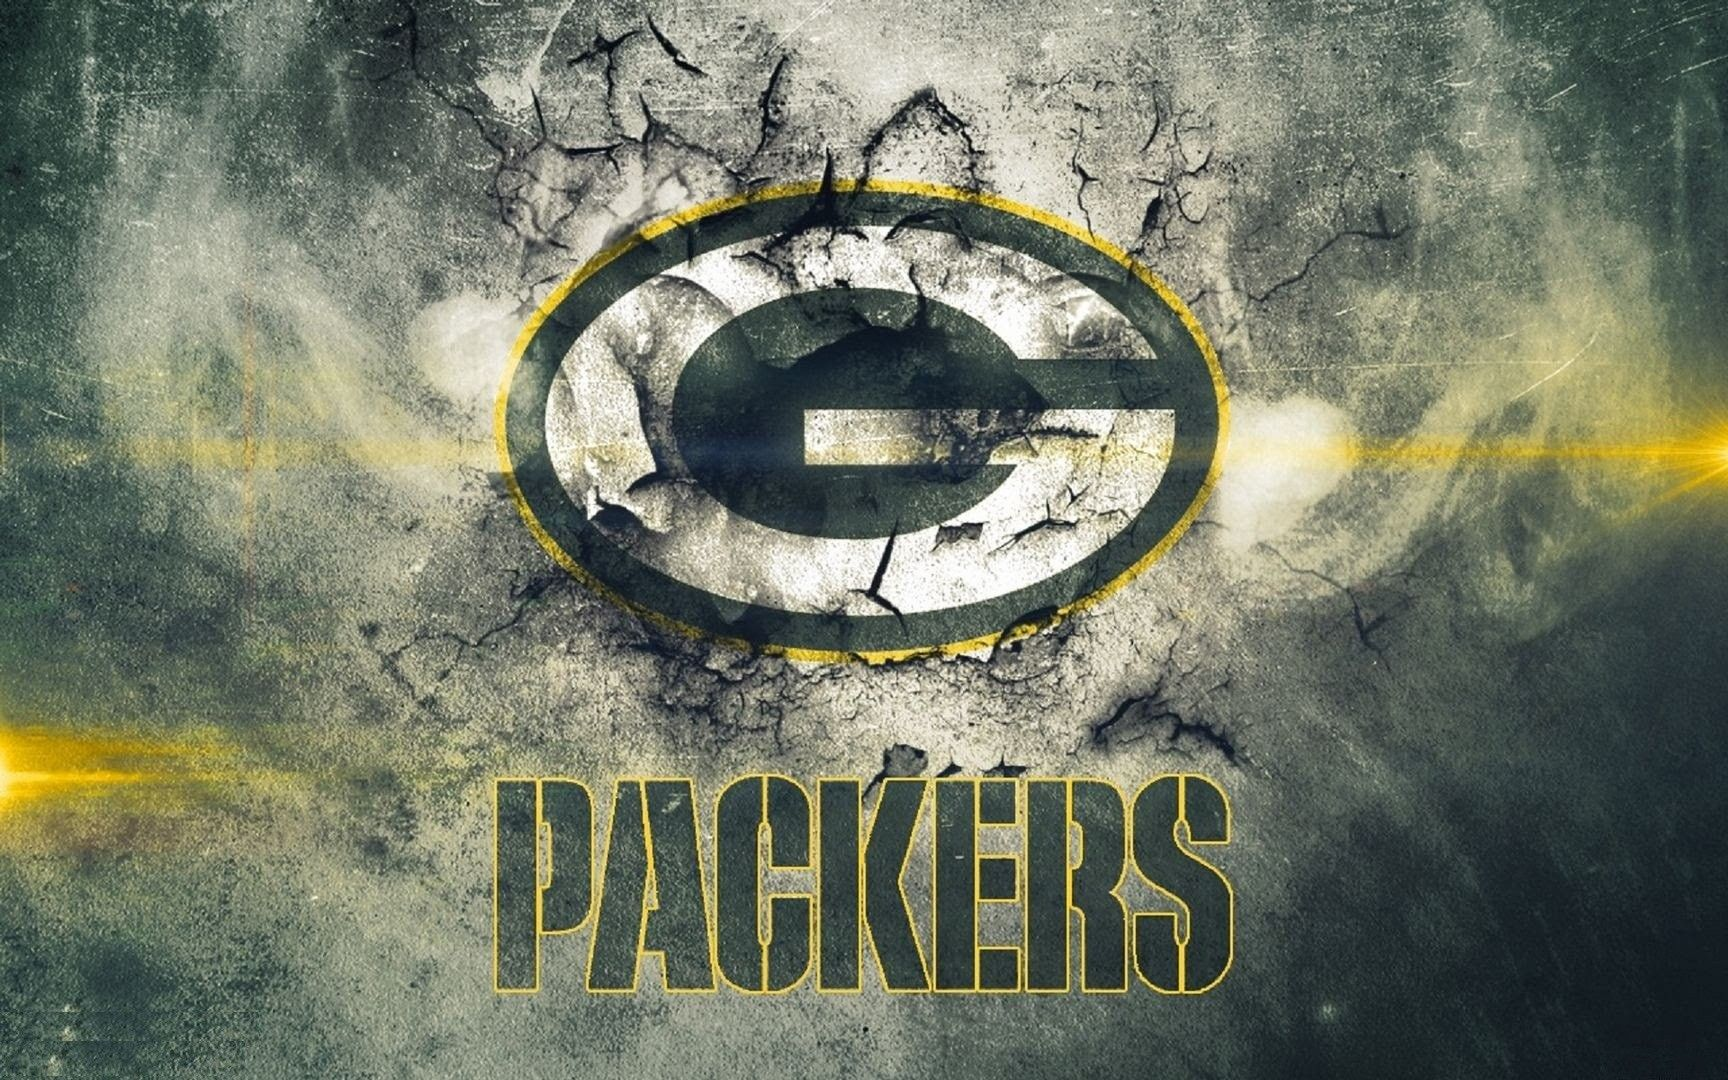 Green Bay Packers Wallpaper Hd 2020 Live Wallpaper Hd Green Bay Packers Wallpaper Green Bay Packers Green Bay Packers Logo